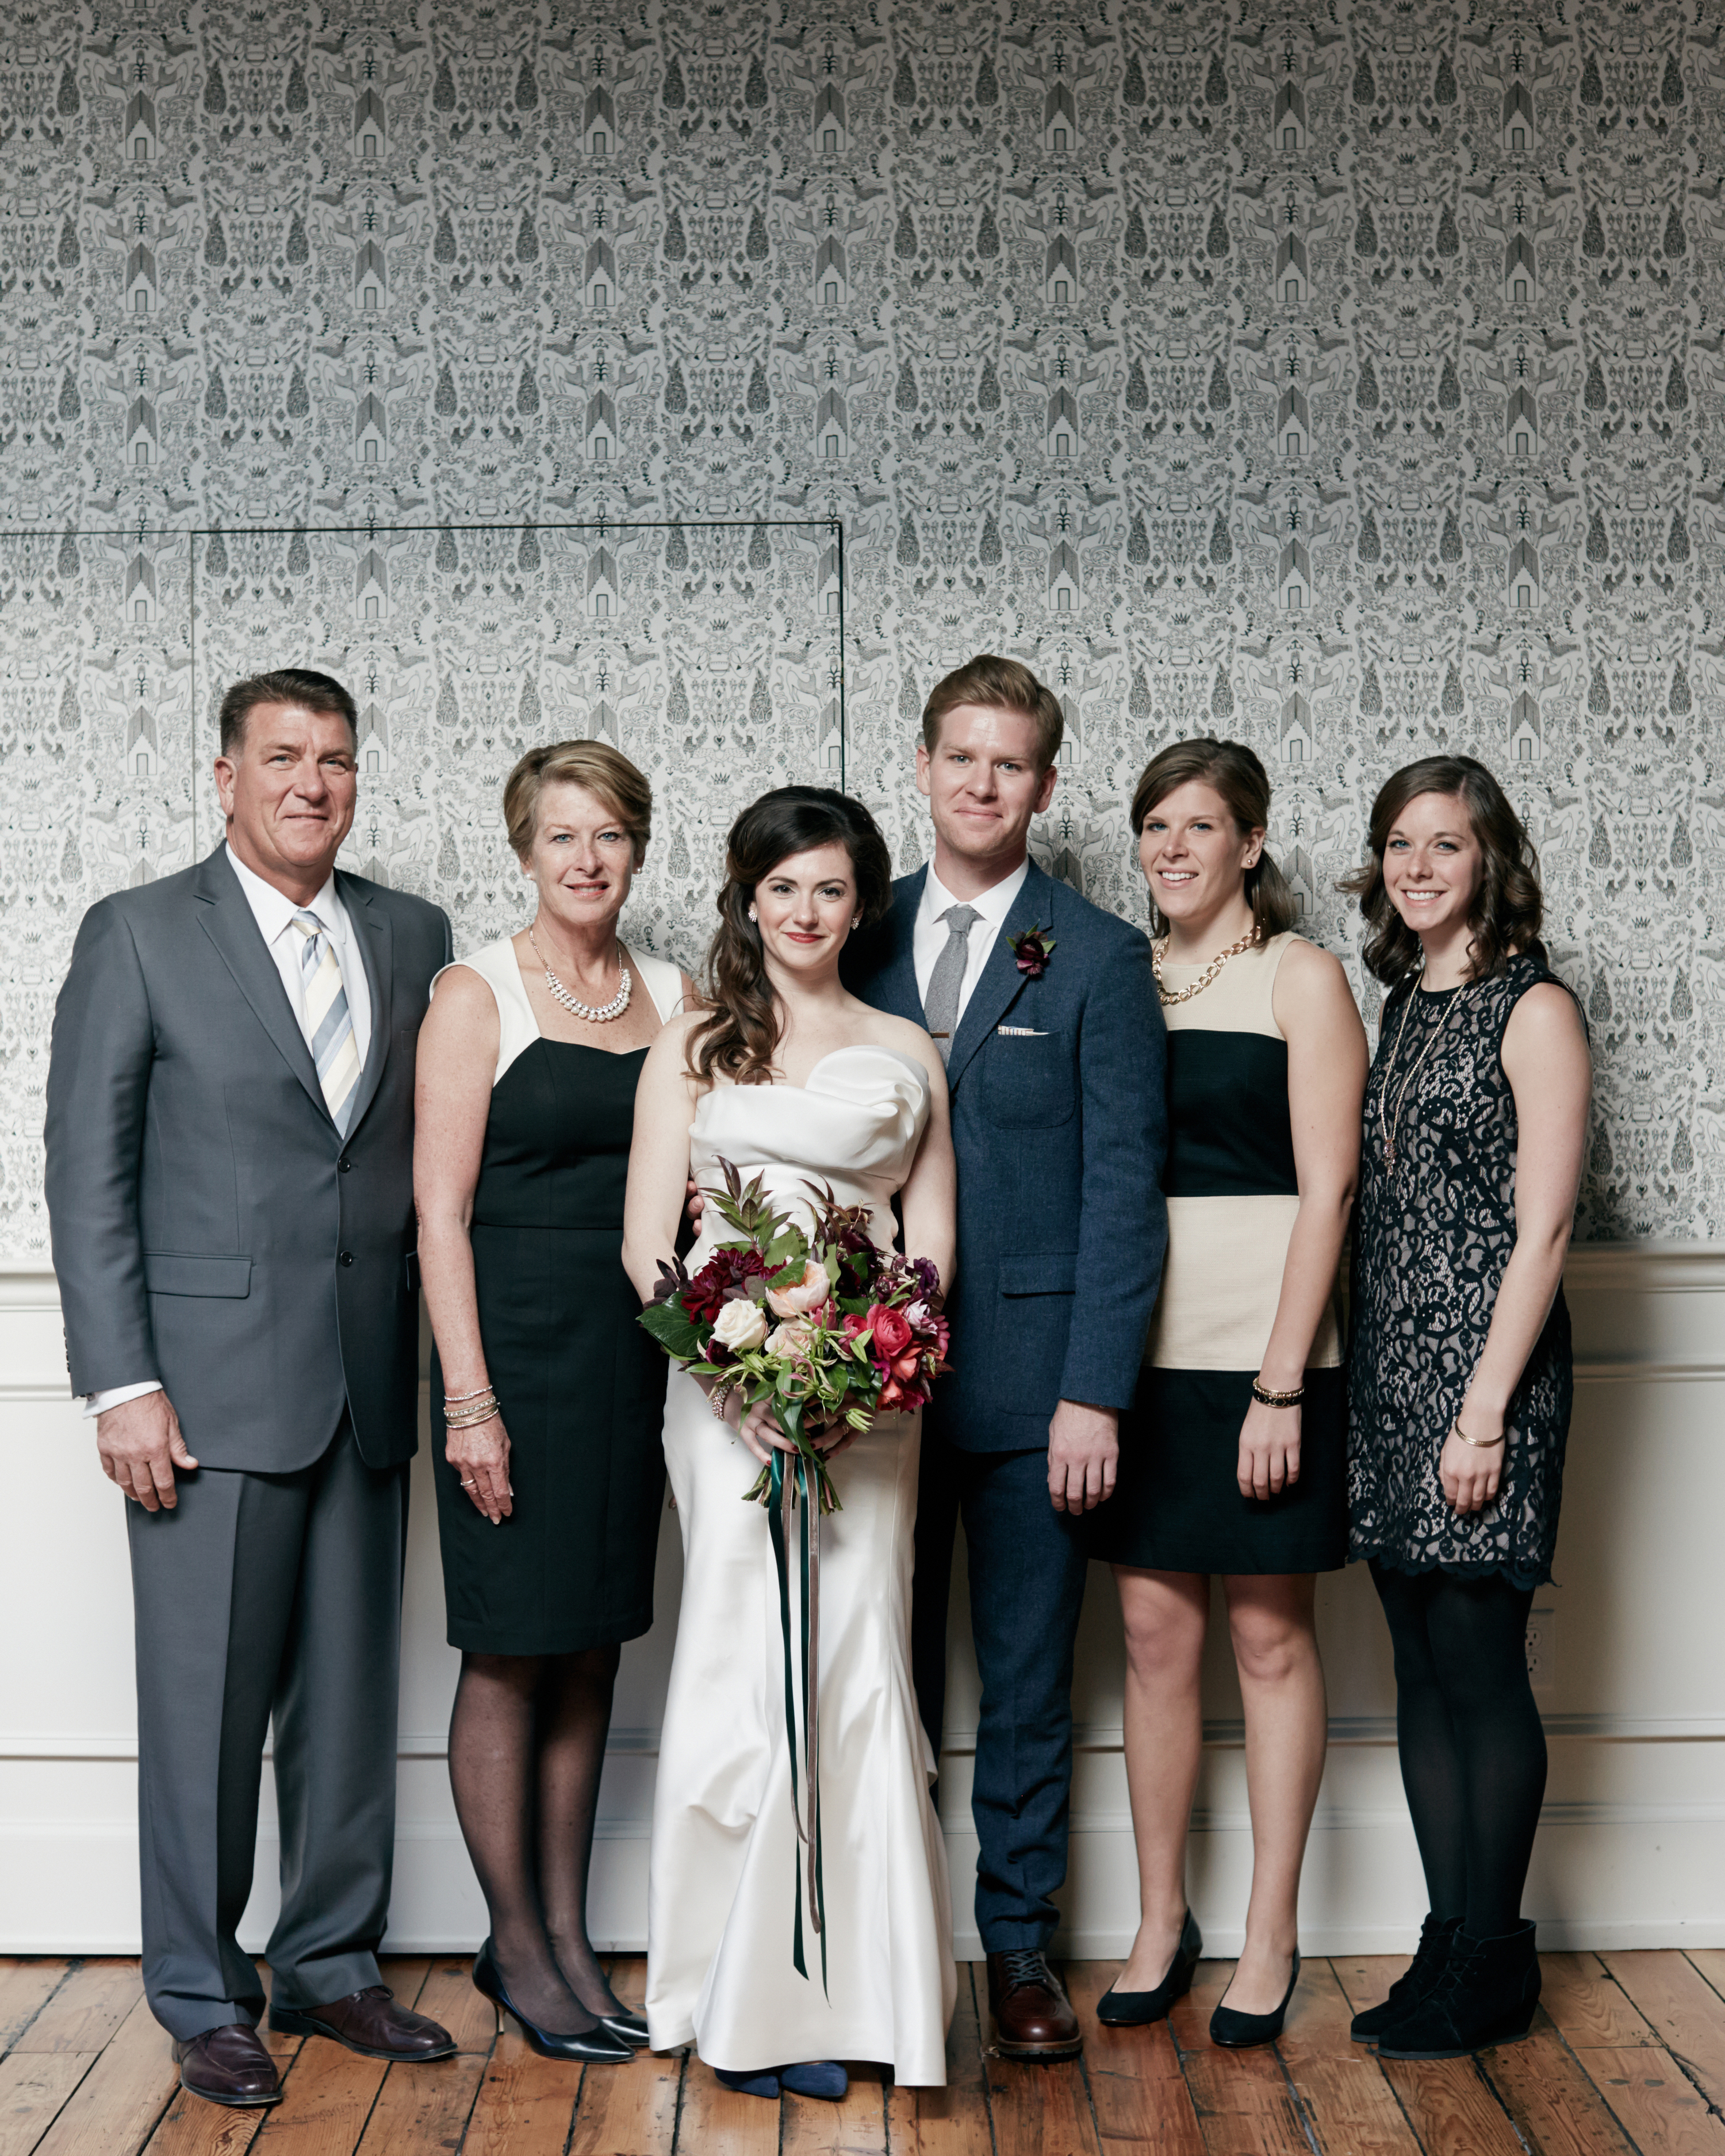 kate-joe-wedding-family-0283-s111816-0215.jpg